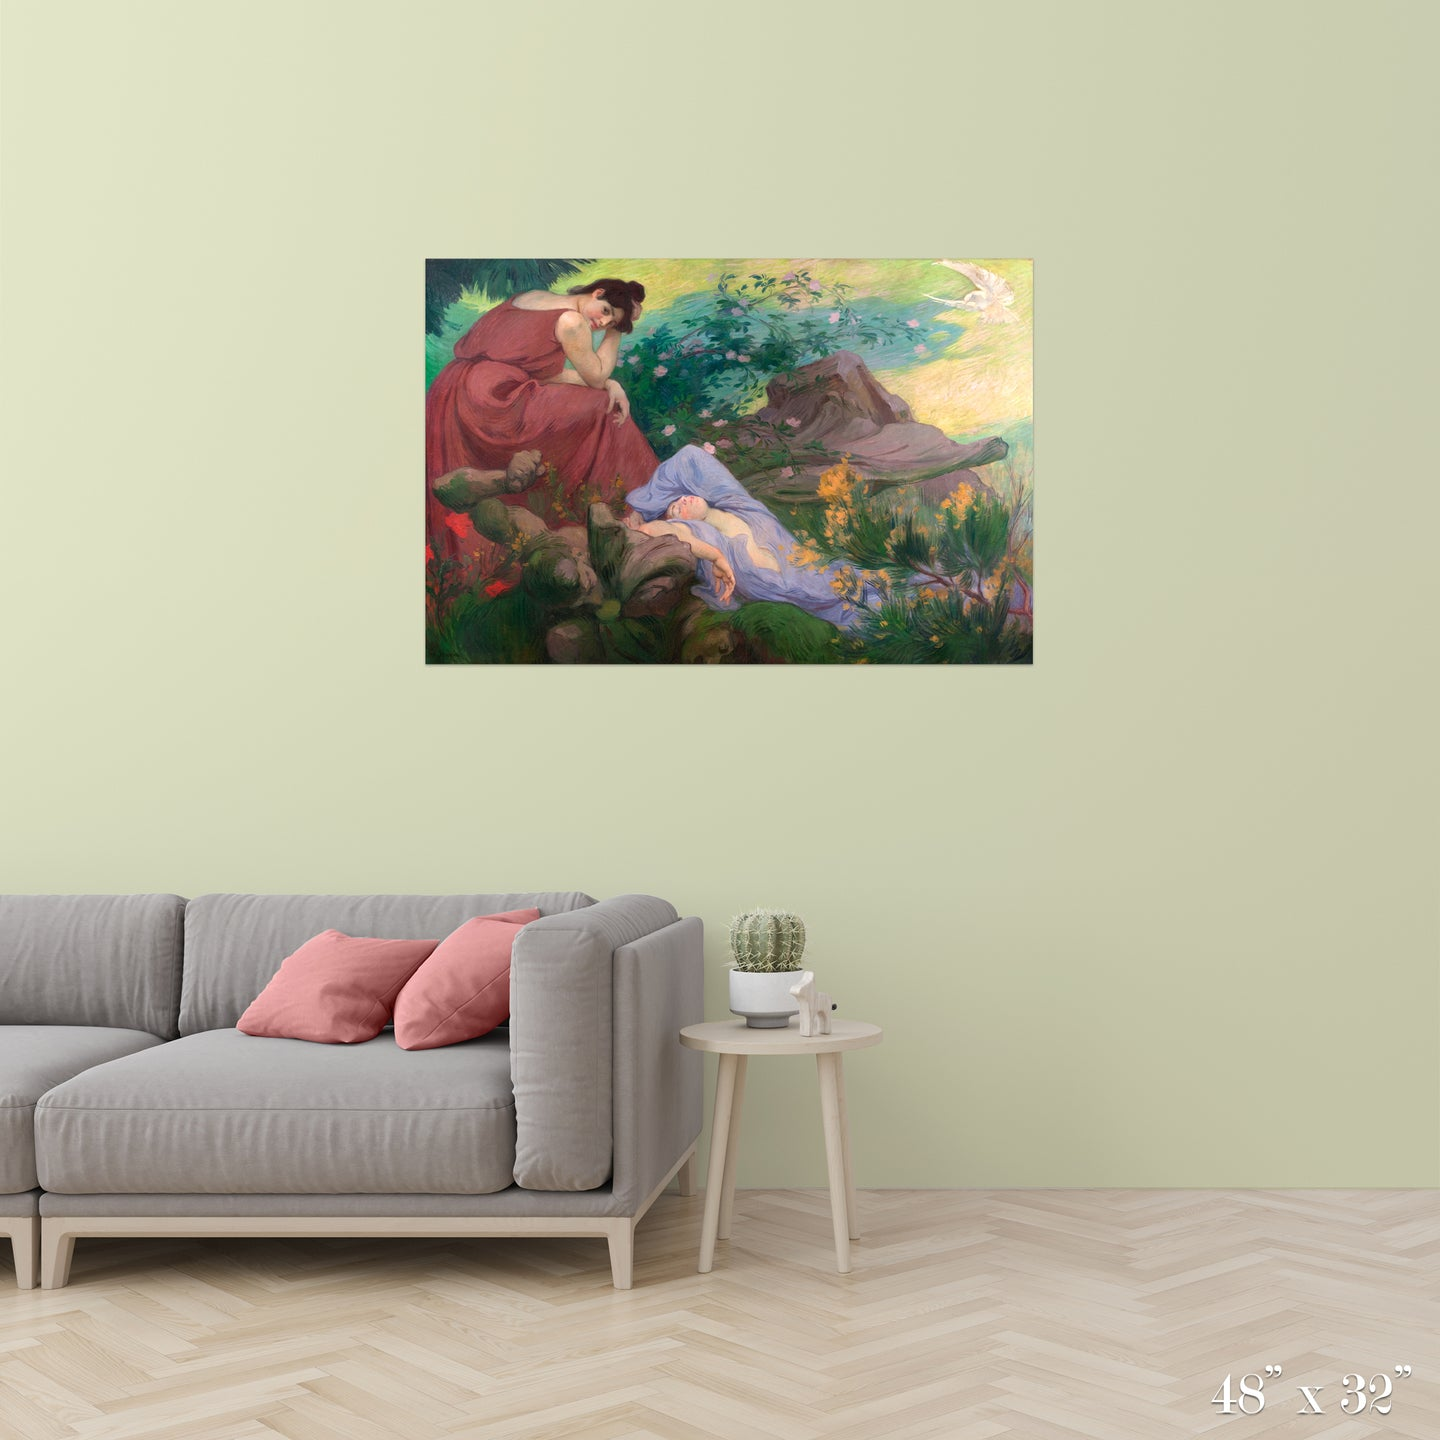 Joyful and Peaceful Rest: Meditation Colossal Art Print